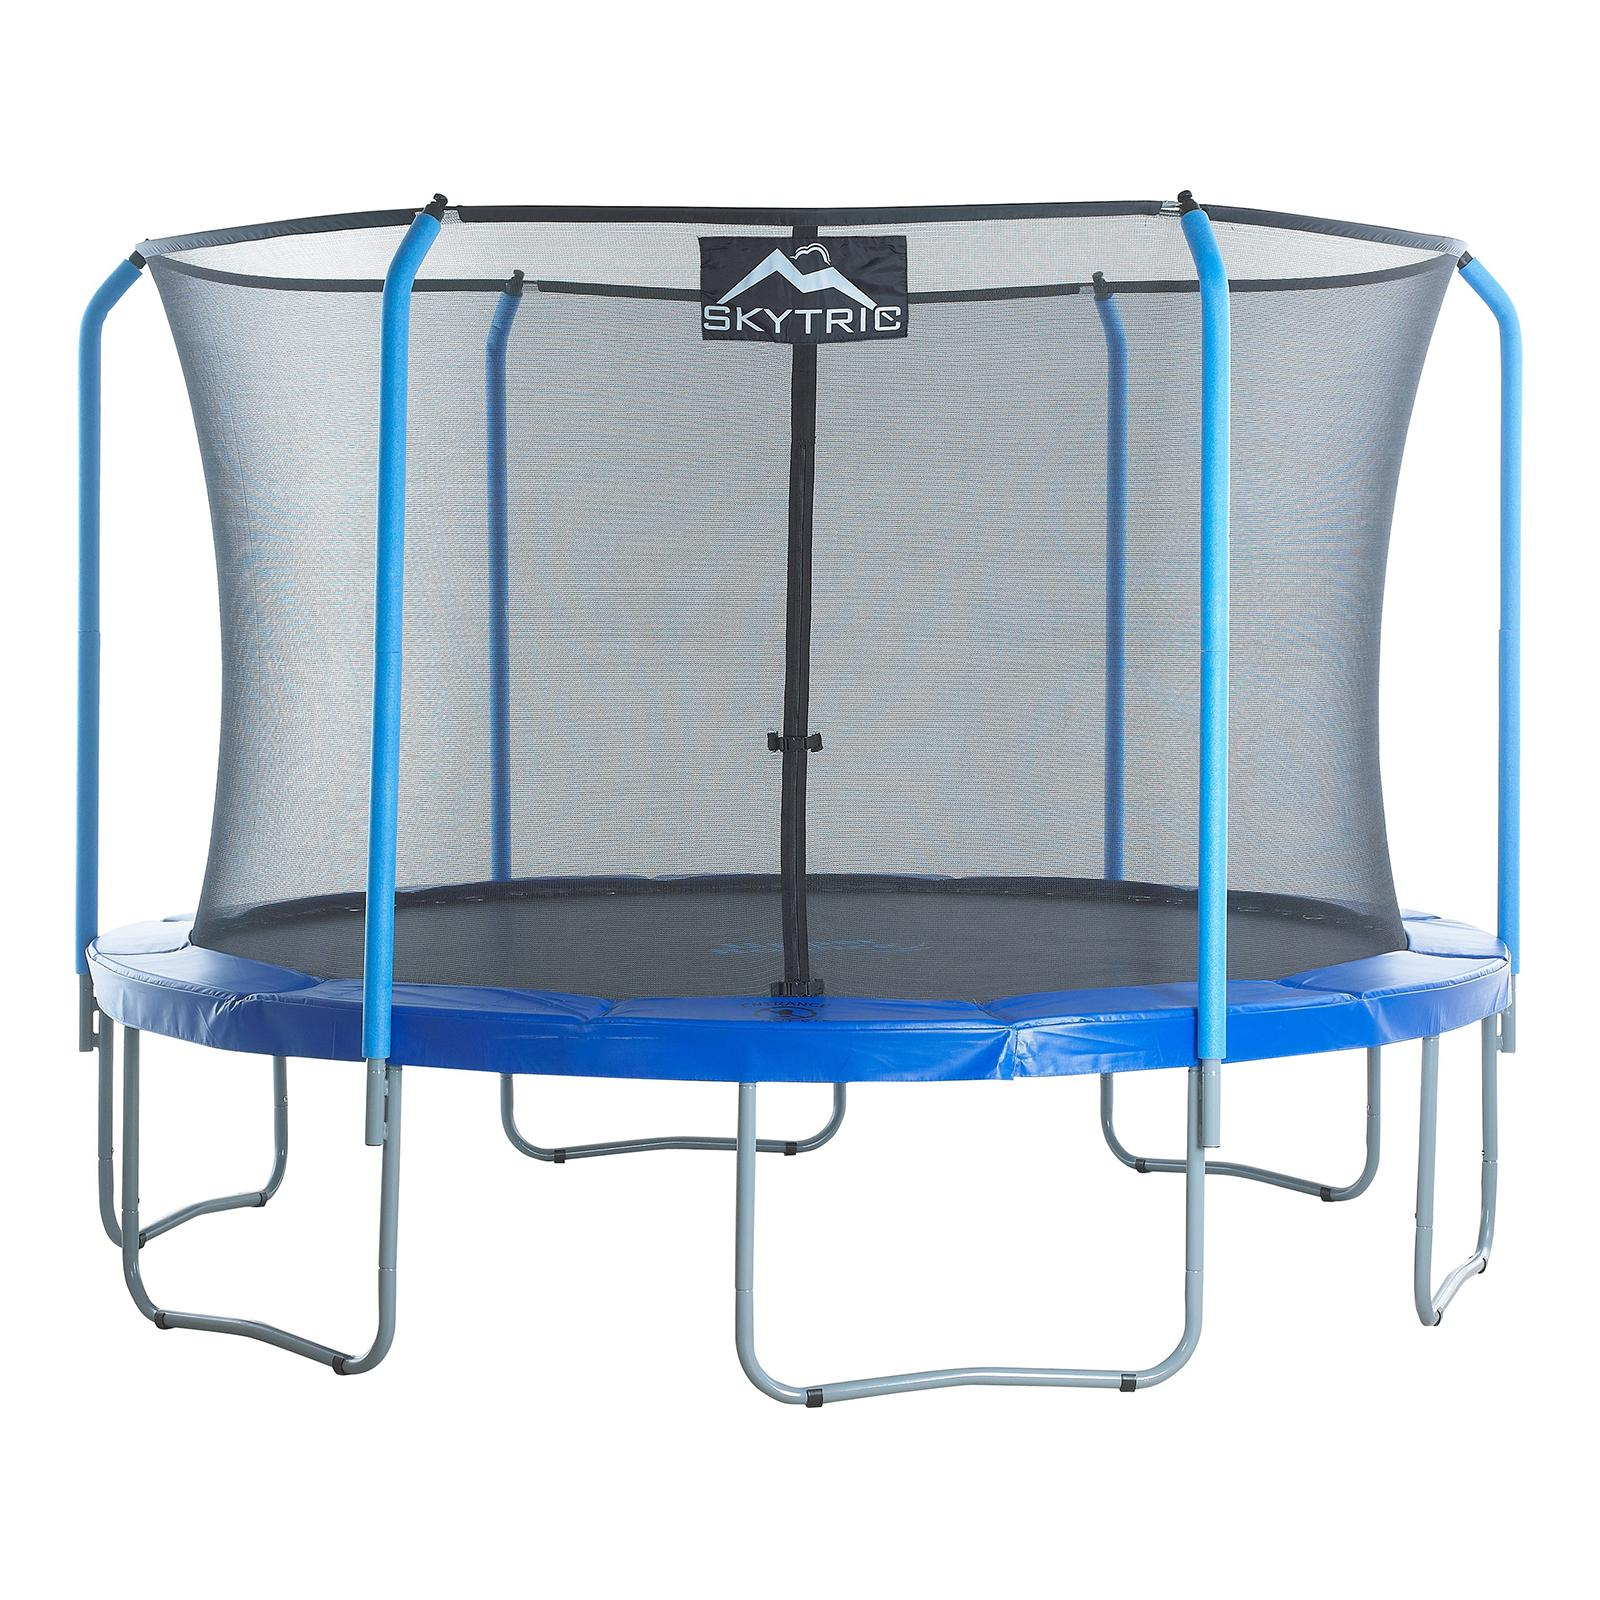 Upper Bounce 11 ft. Trampoline with Top Ring Enclosure - UBSF02-11